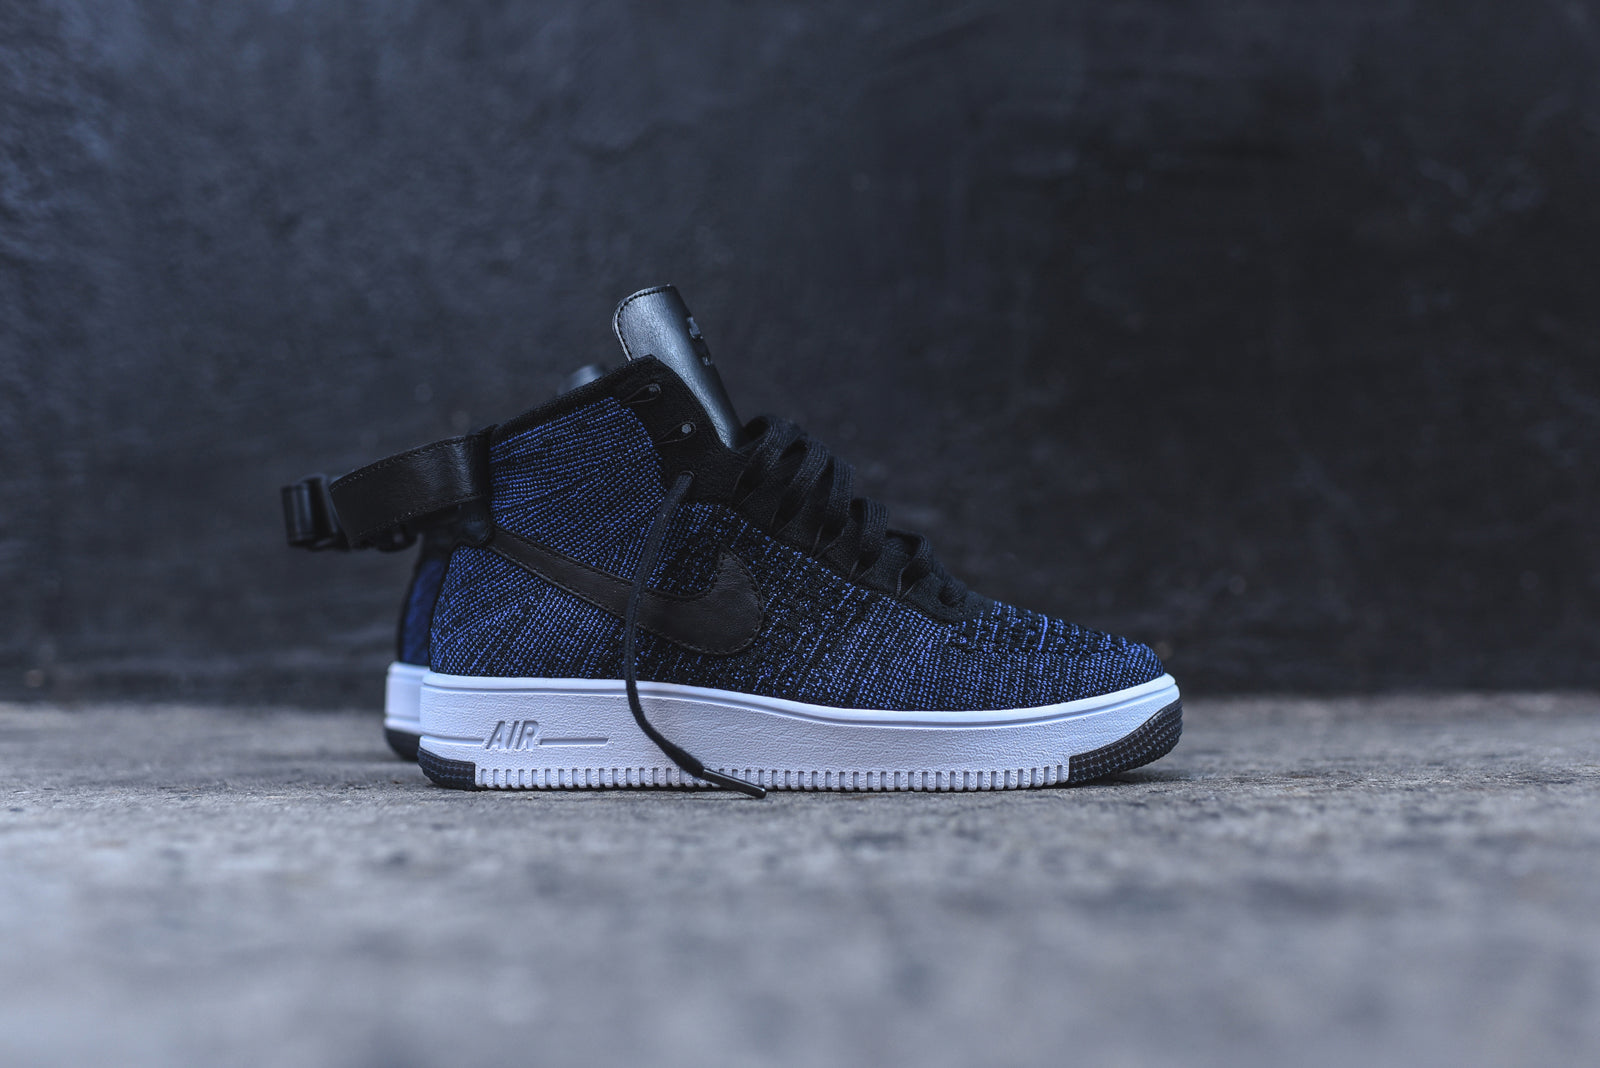 release date 6a838 fffa4 Nike Air Force 1 Flyknit Mid  Low. April 19, 2016. -2. -1